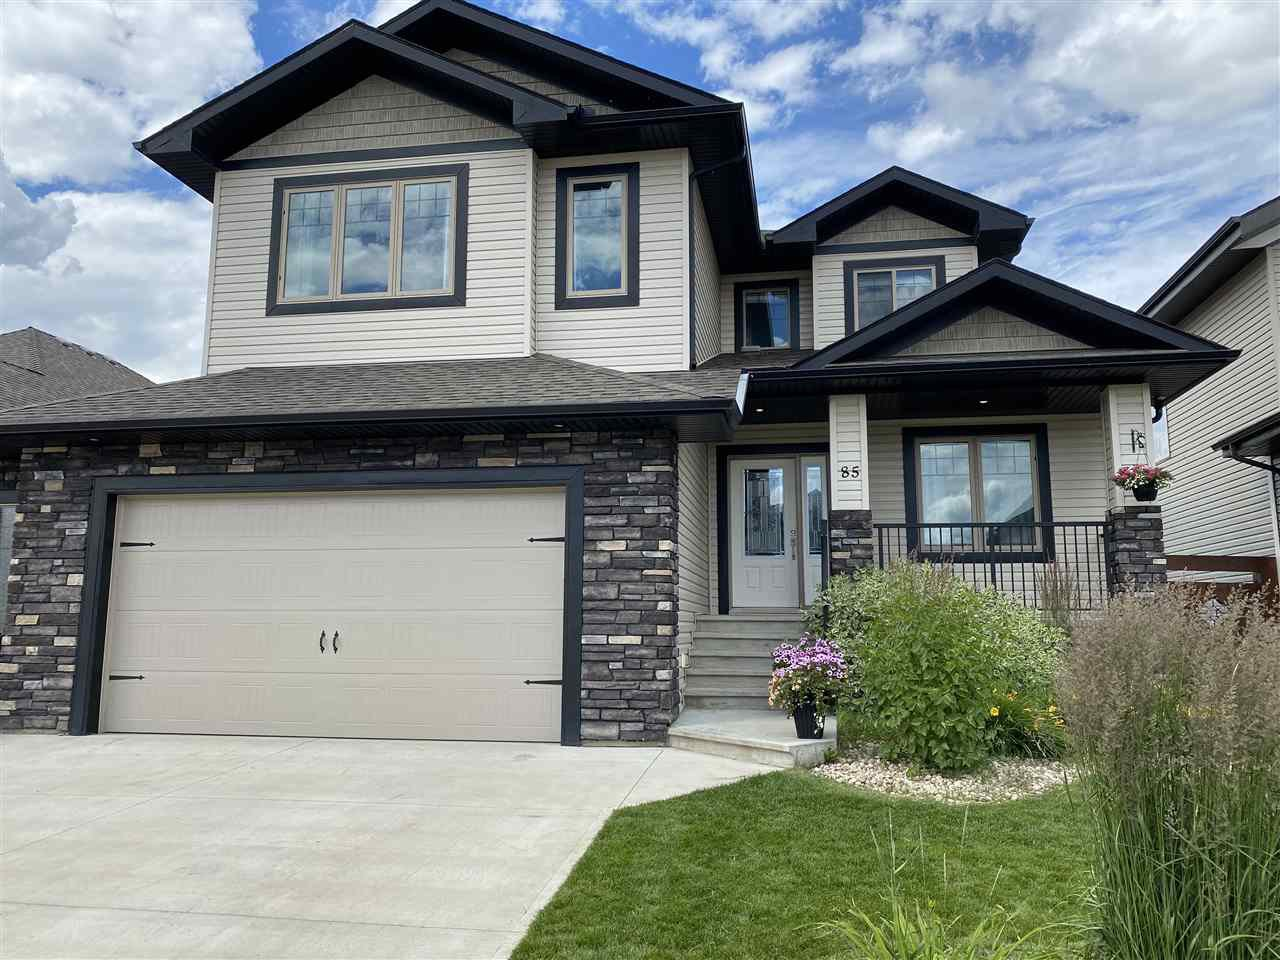 Main Photo: 85 DANFIELD Place: Spruce Grove House for sale : MLS®# E4210045